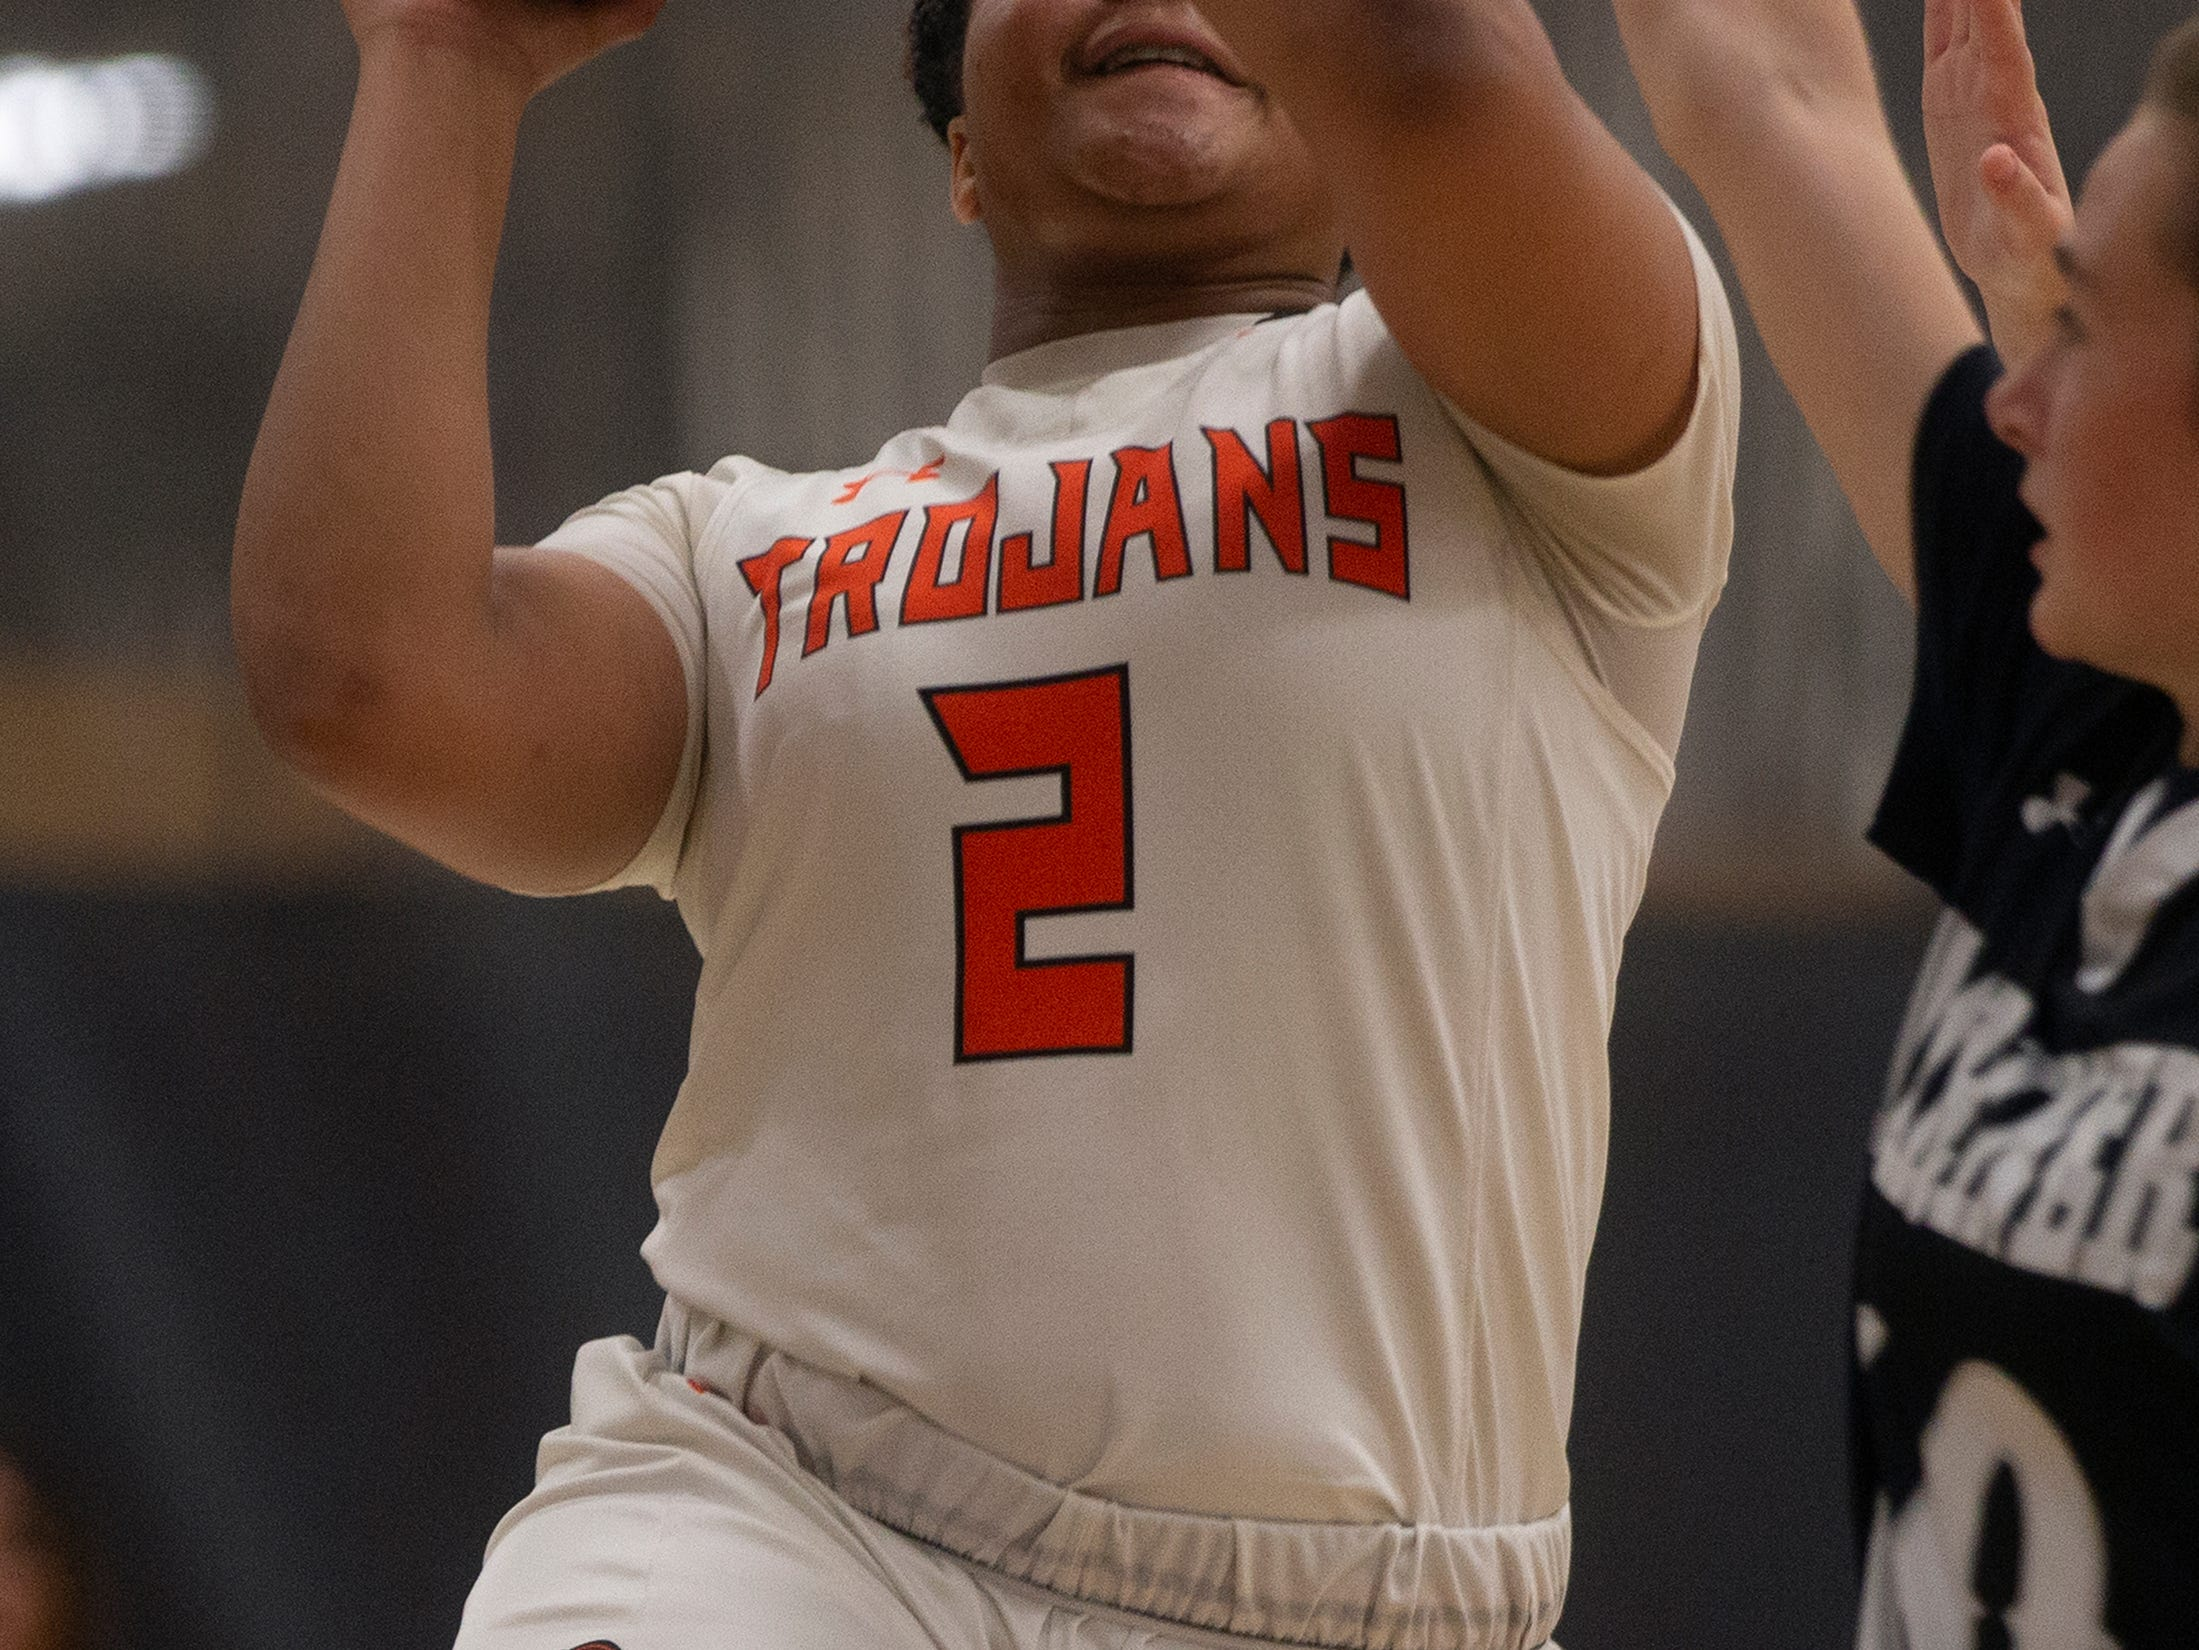 Lely High School's Cherrie Terry goes for a layup during their basketball game against Mariners High School, Thursday, Feb. 6, 2019, at Lely High School.